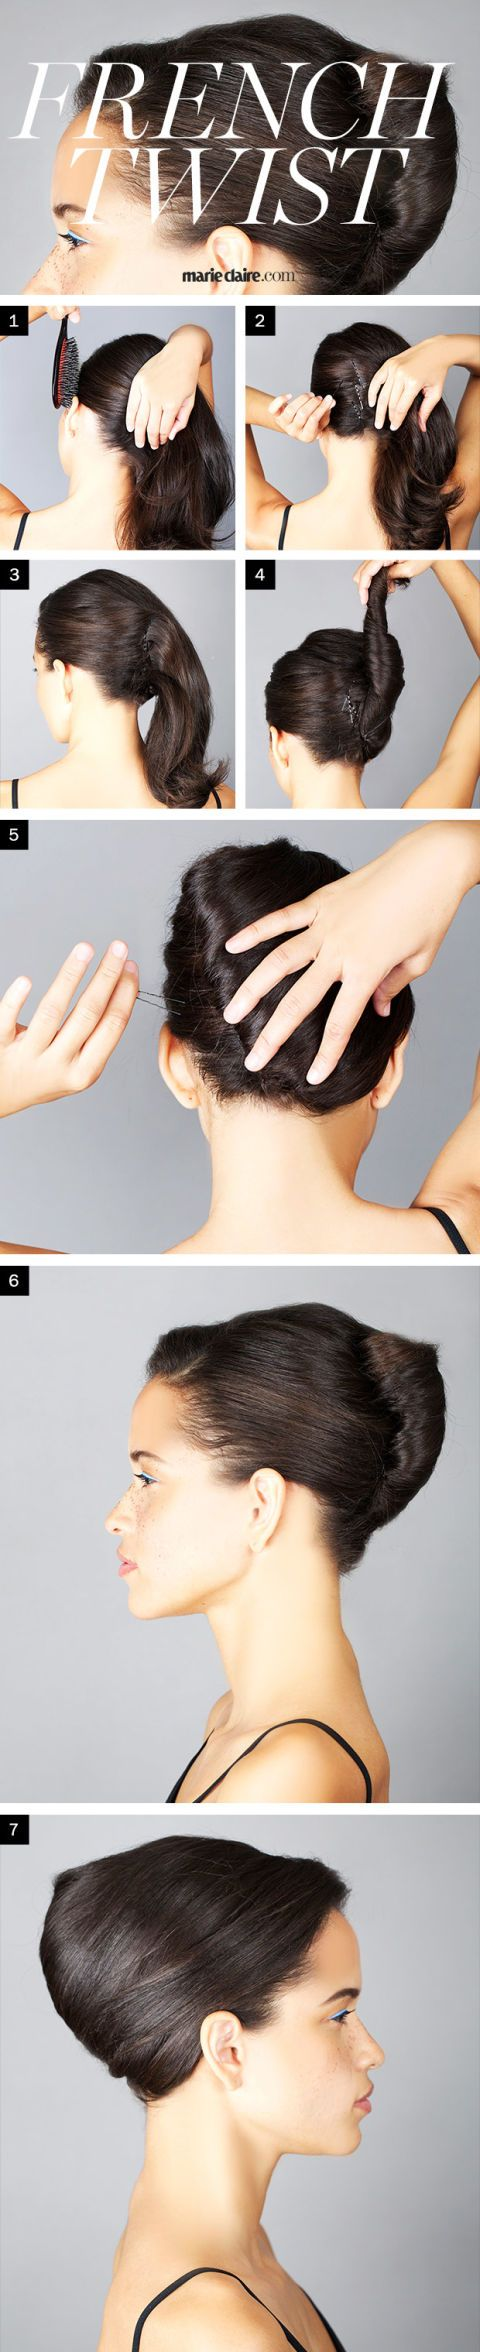 Hair How-To: A French Twist